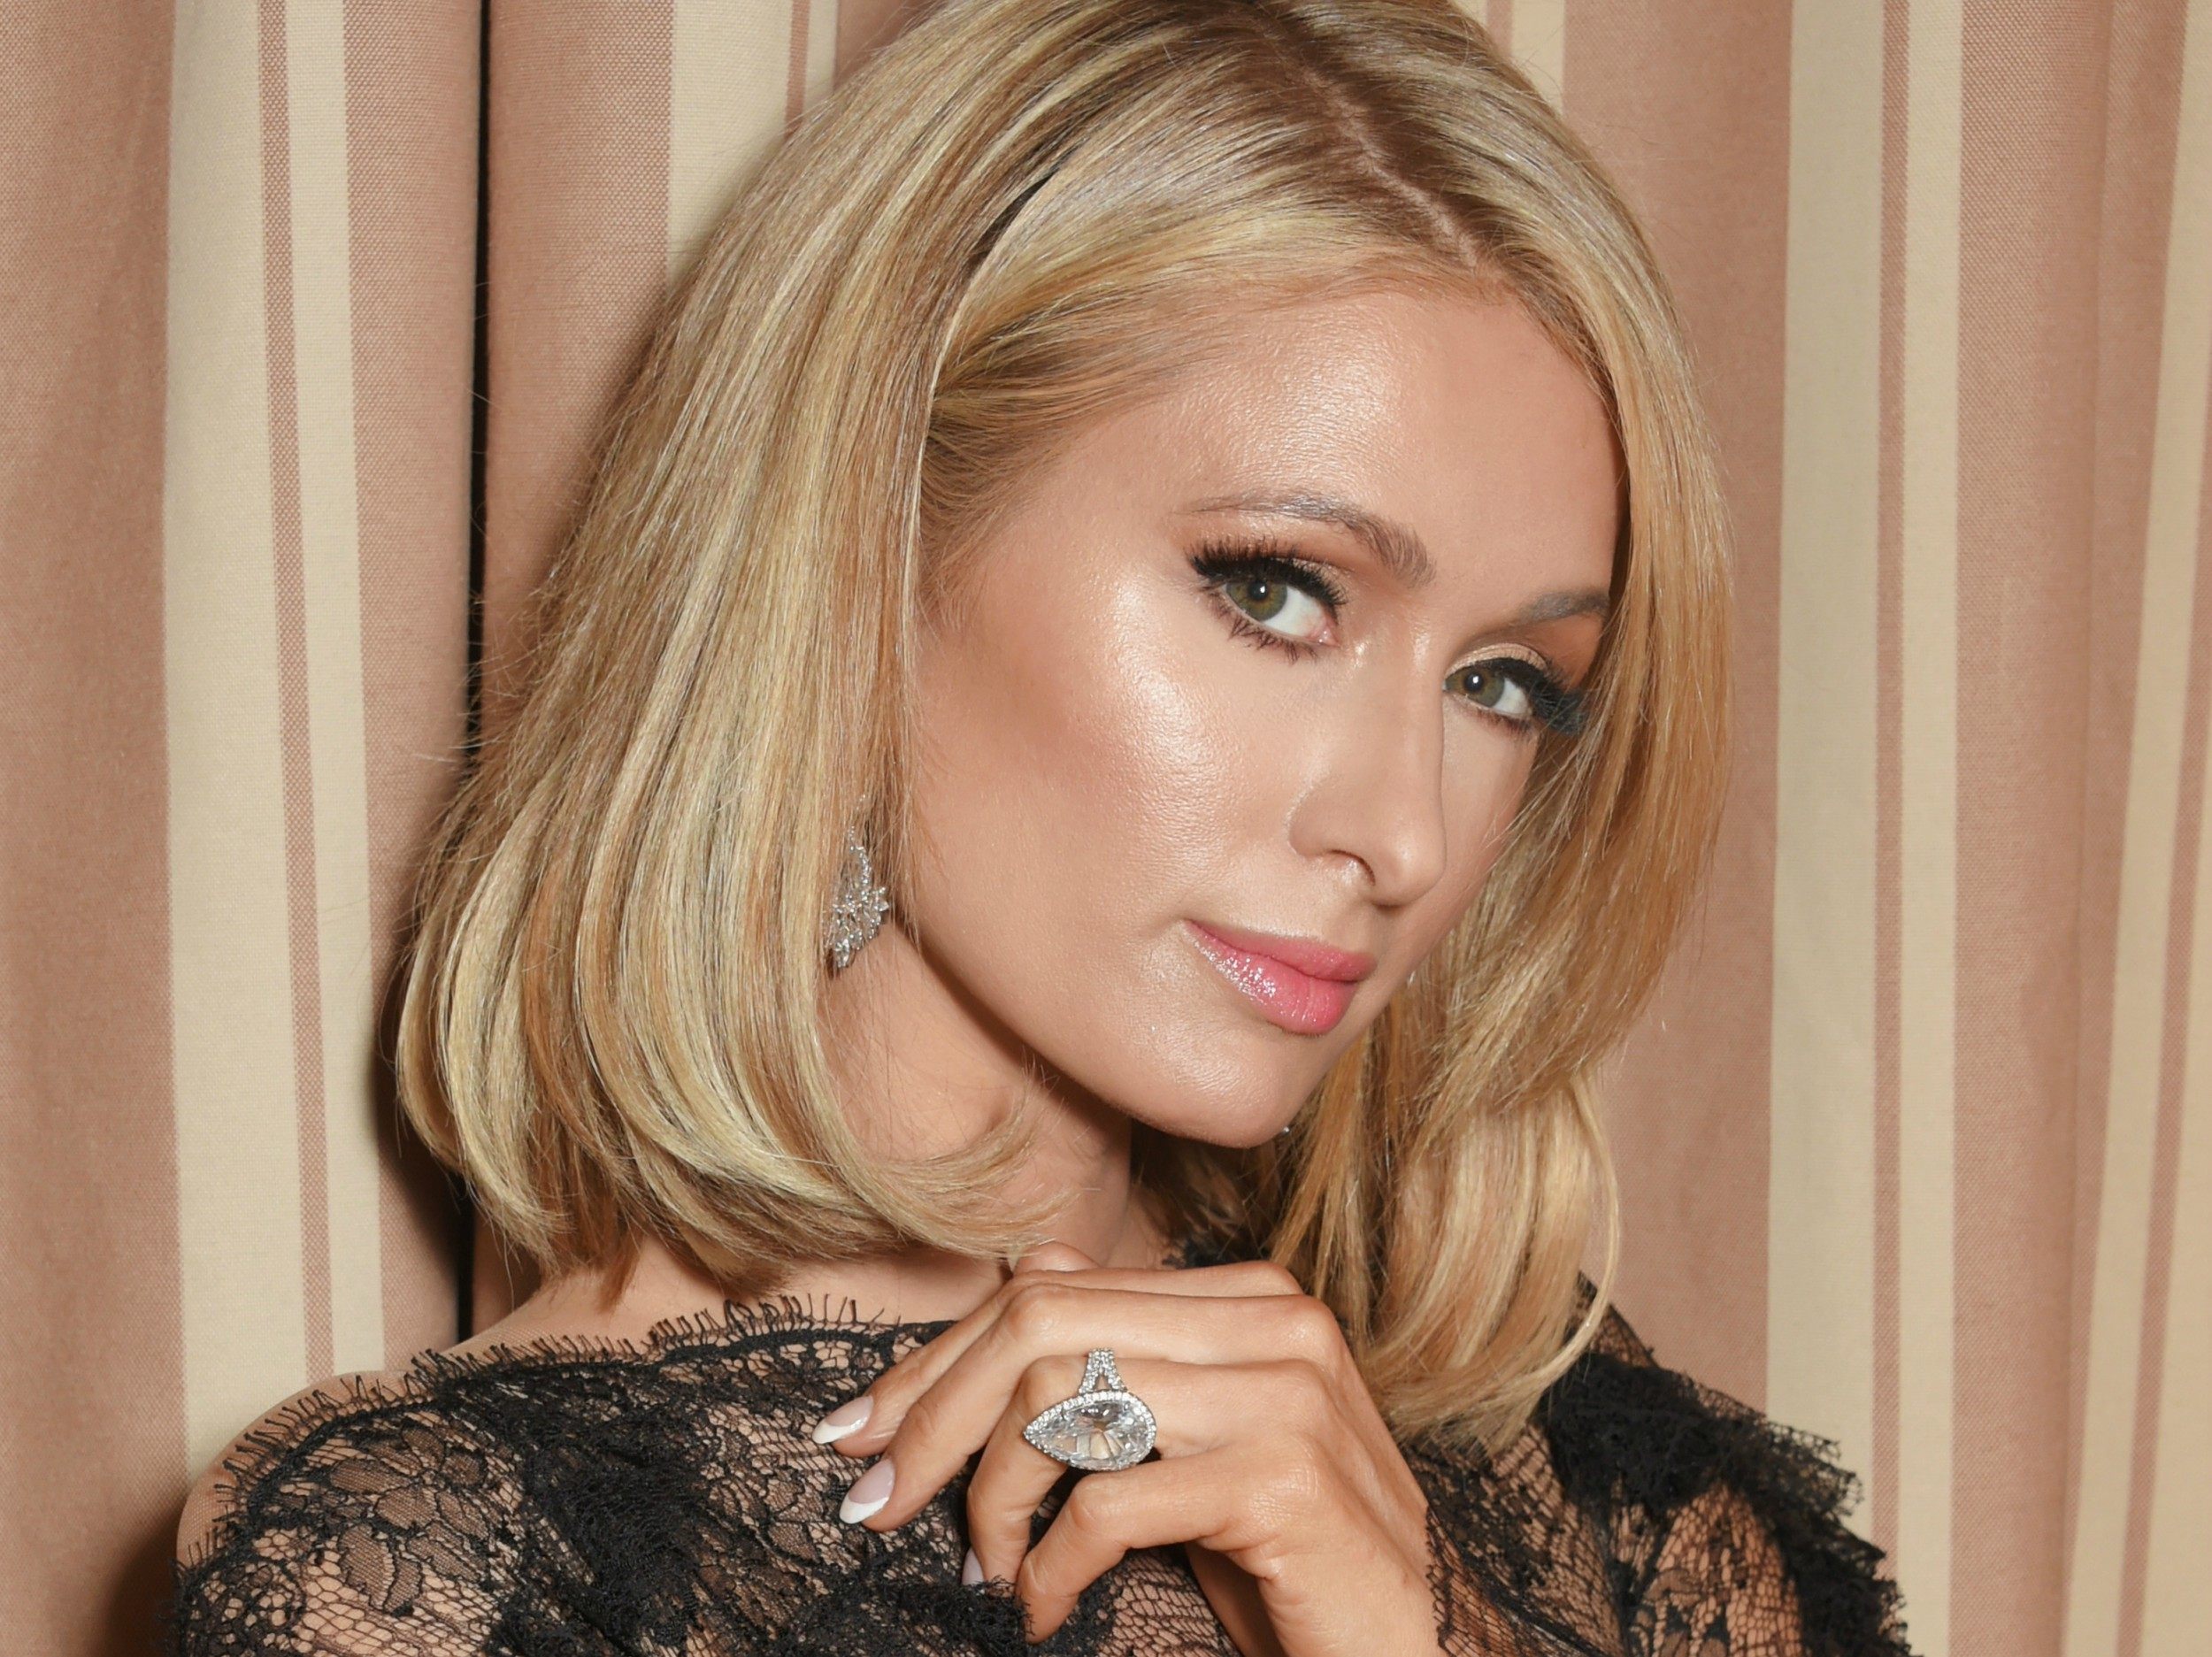 Paris Hilton Lost $2M Engagement Ring While Partying at Miami Night Club